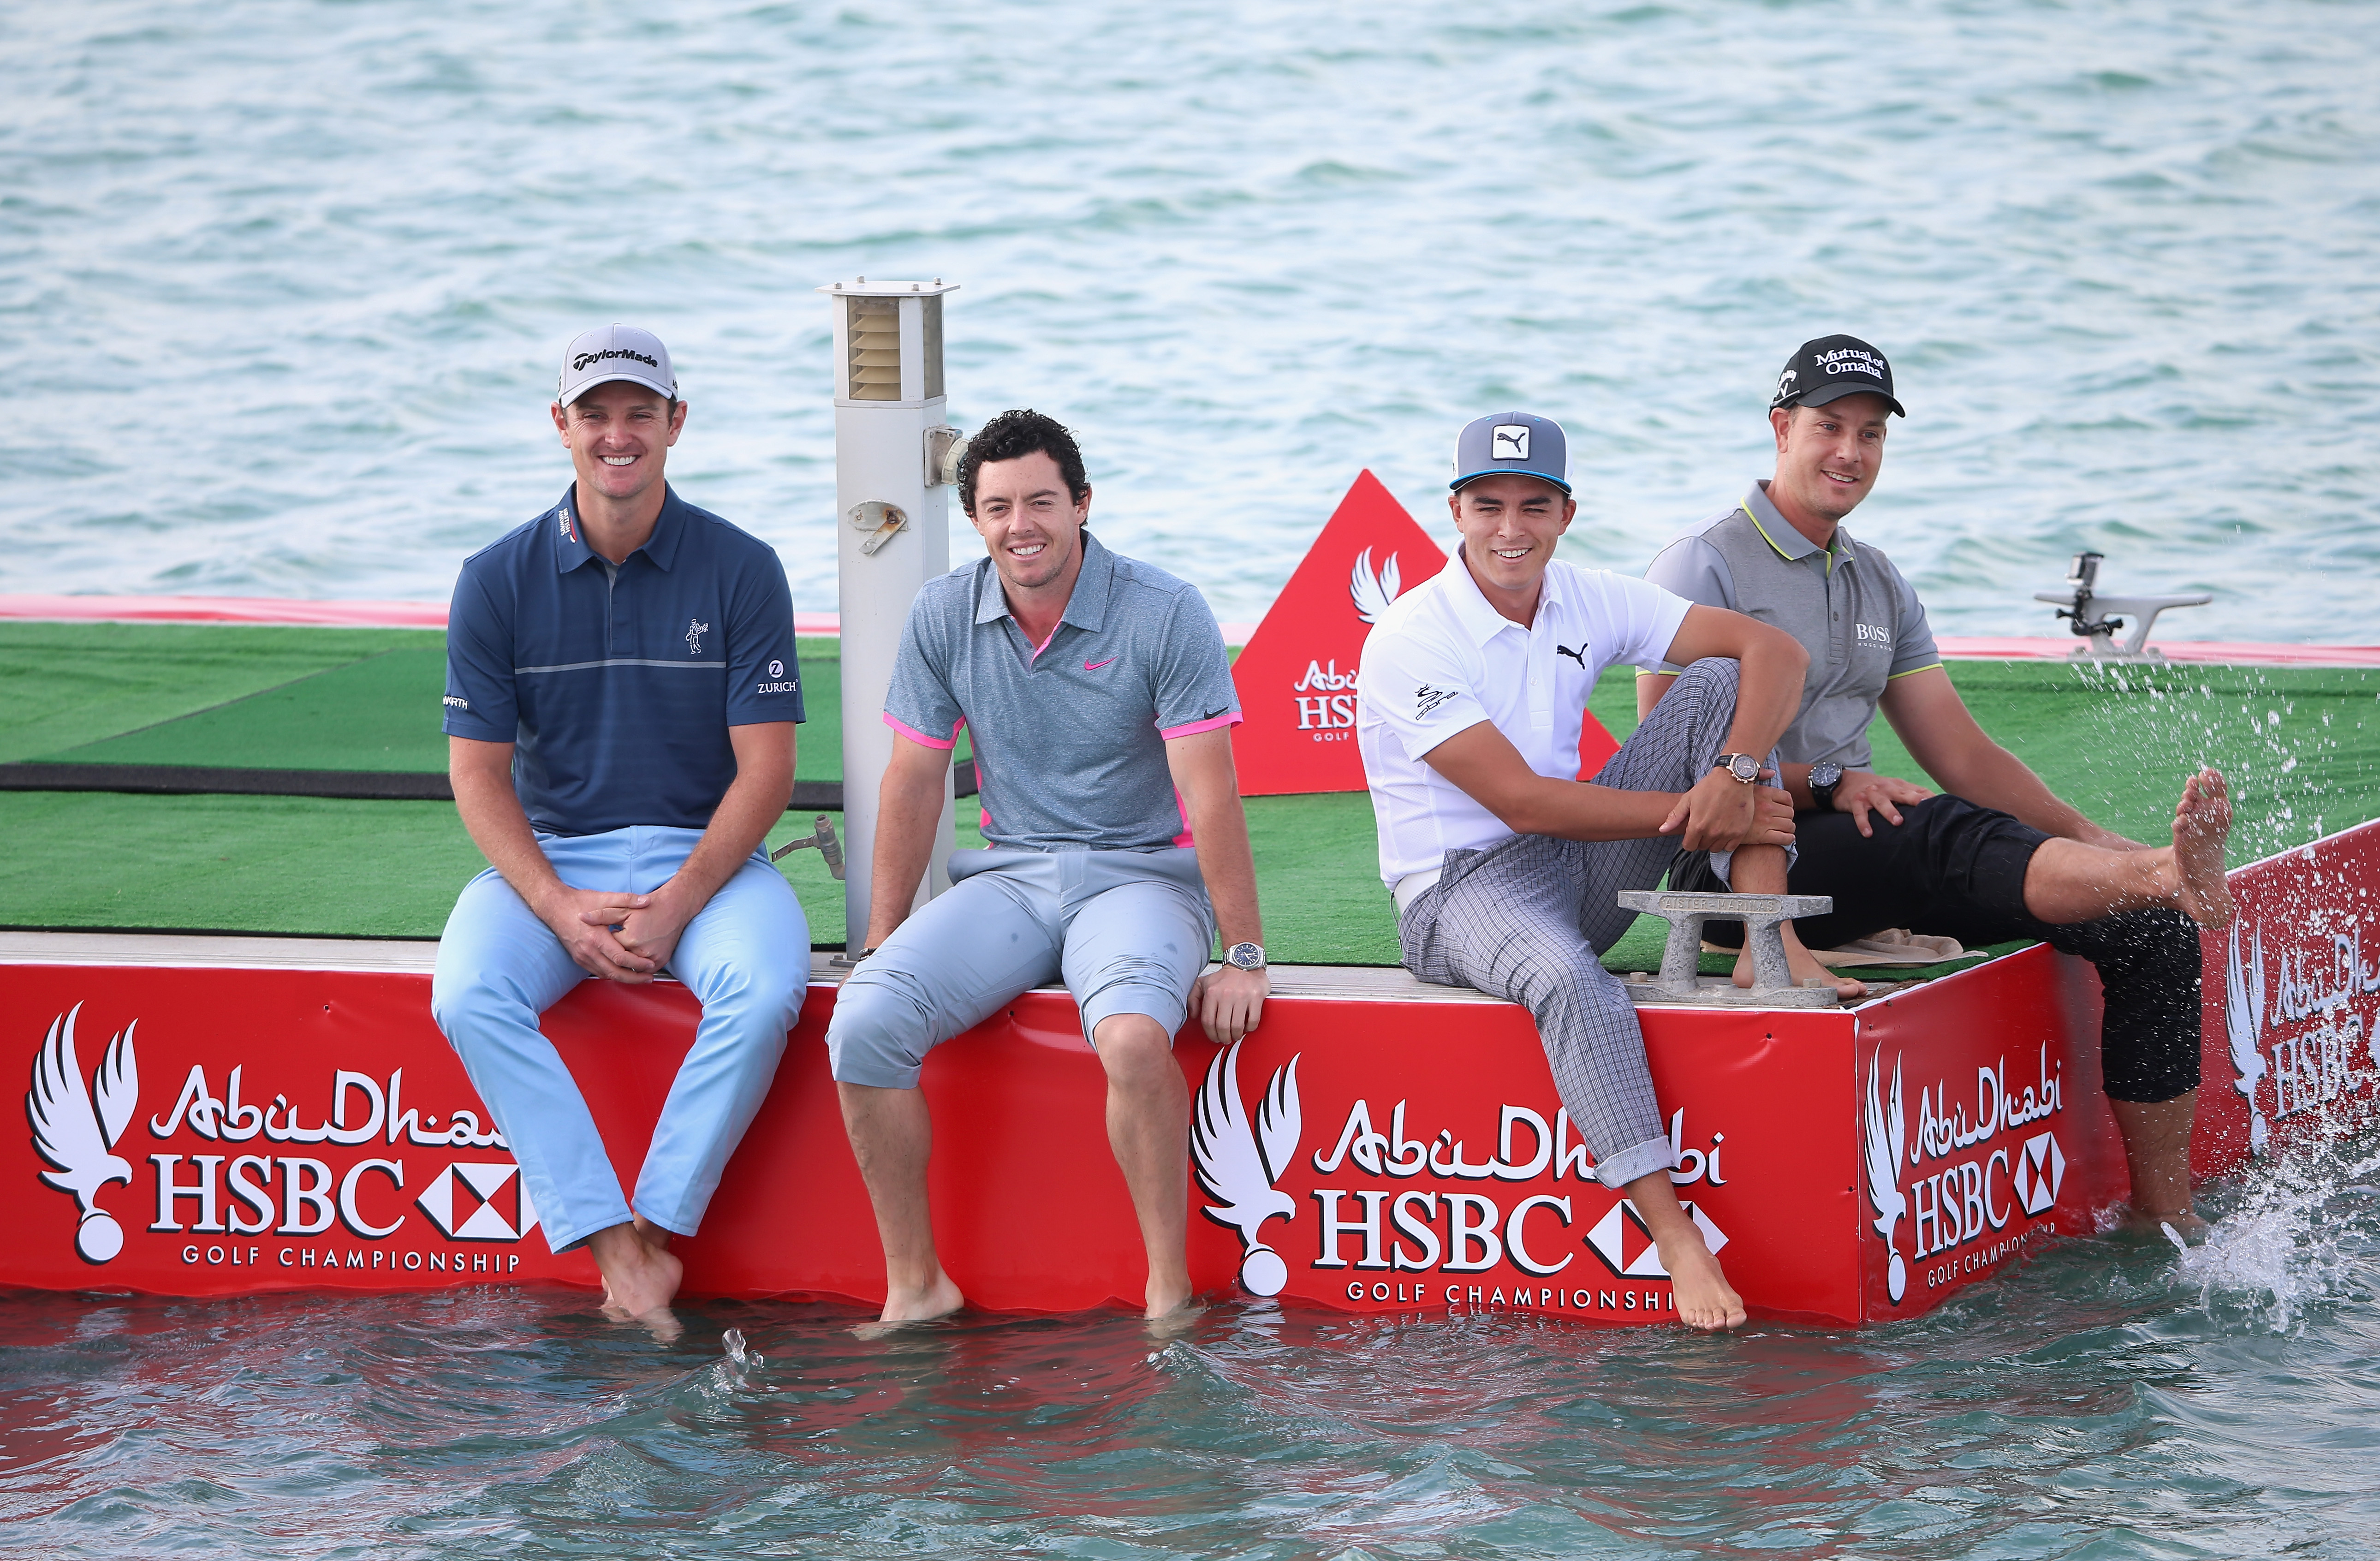 Abu Dhabi HSBC Championship 2015: Tee times, TV schedule and online streaming for Thursday